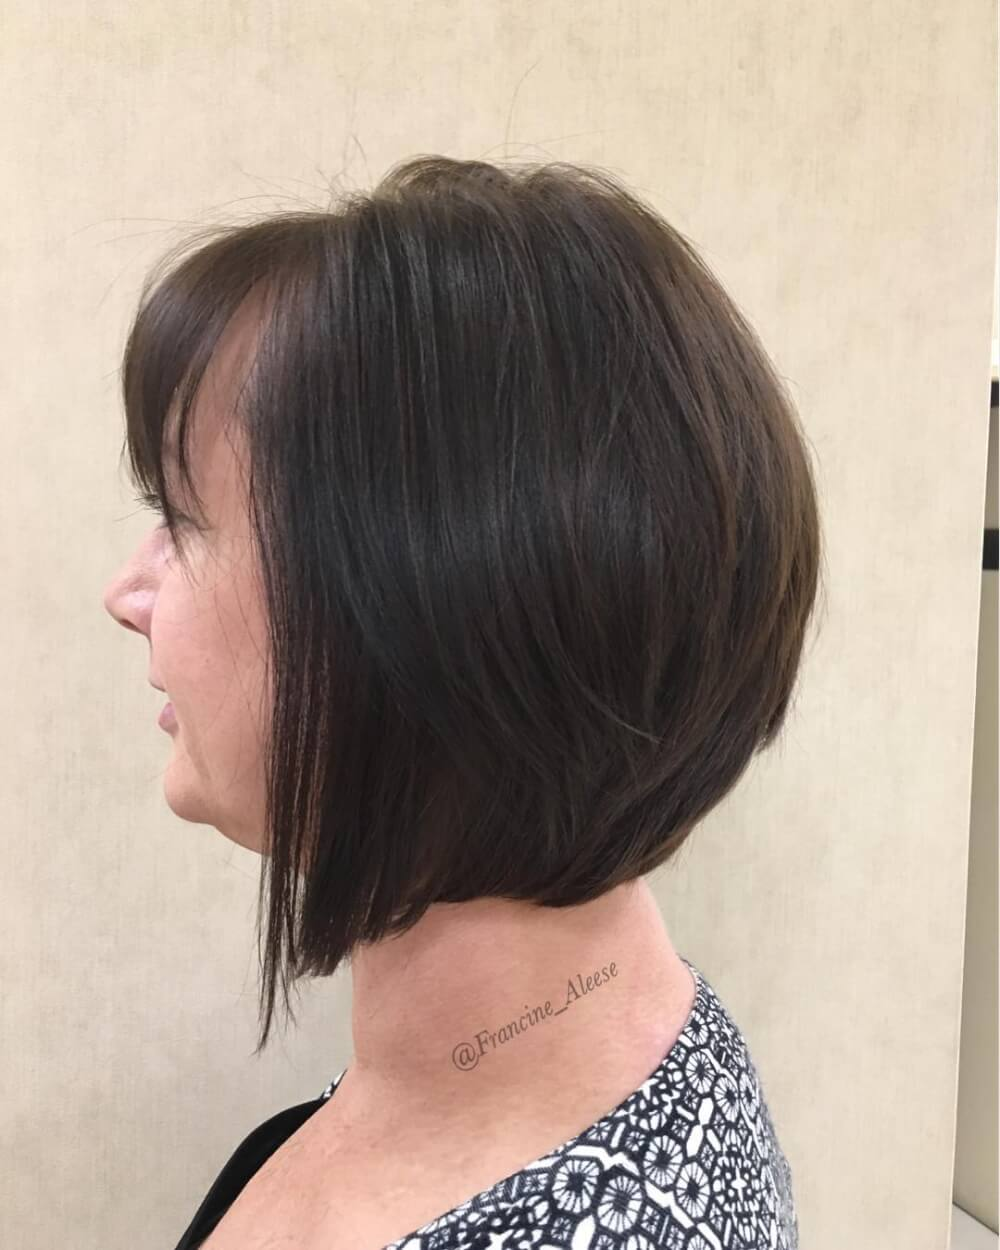 A lovely layered bob hairstyle